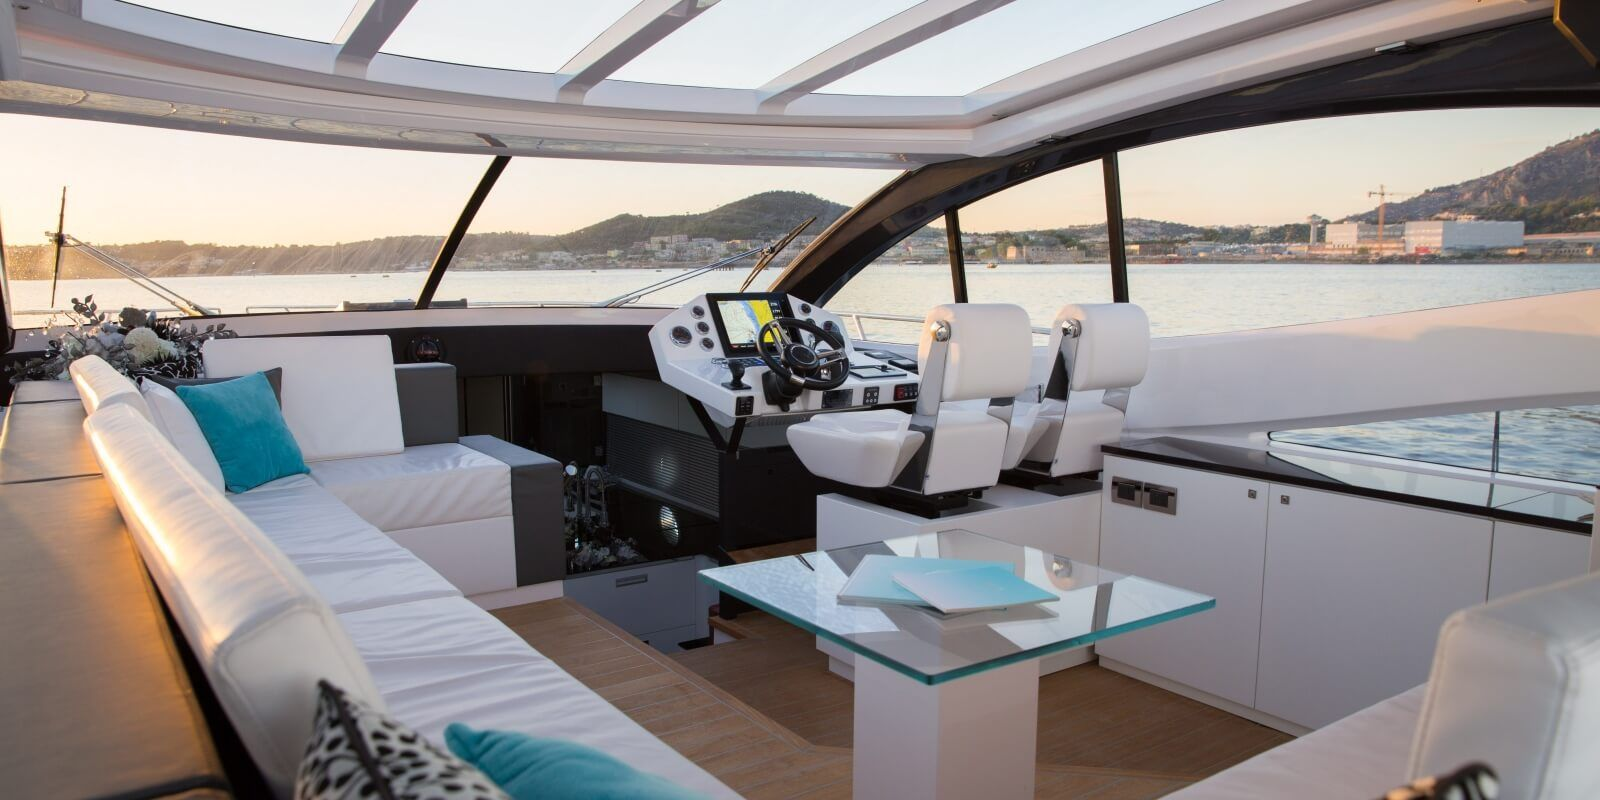 https://www.talamare.com/medias/The cockpit of a charter boat en route from Cannes to St Tropez during a day yacht rental on the French Riviera